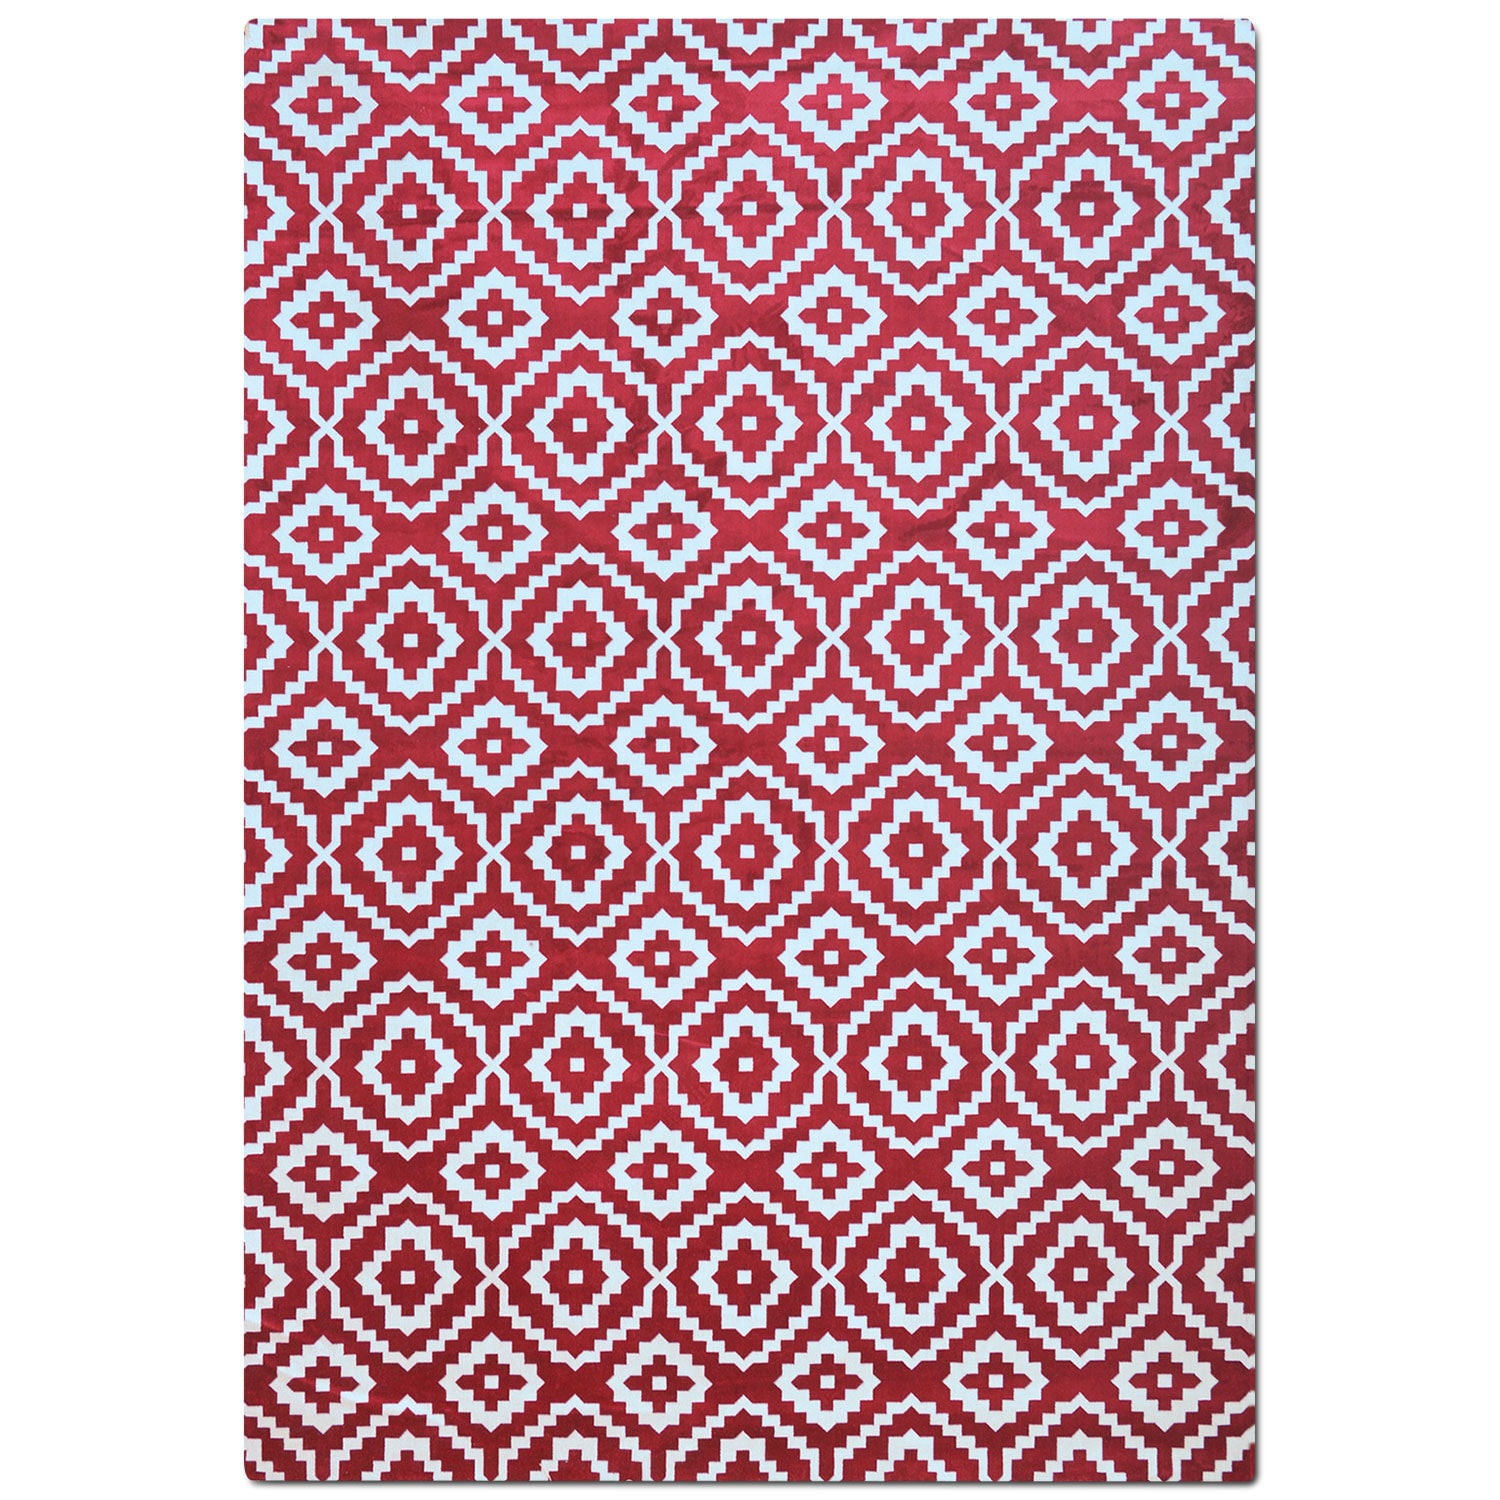 Rugs - Sonoma 5' x 8' Area Rug - Red and White